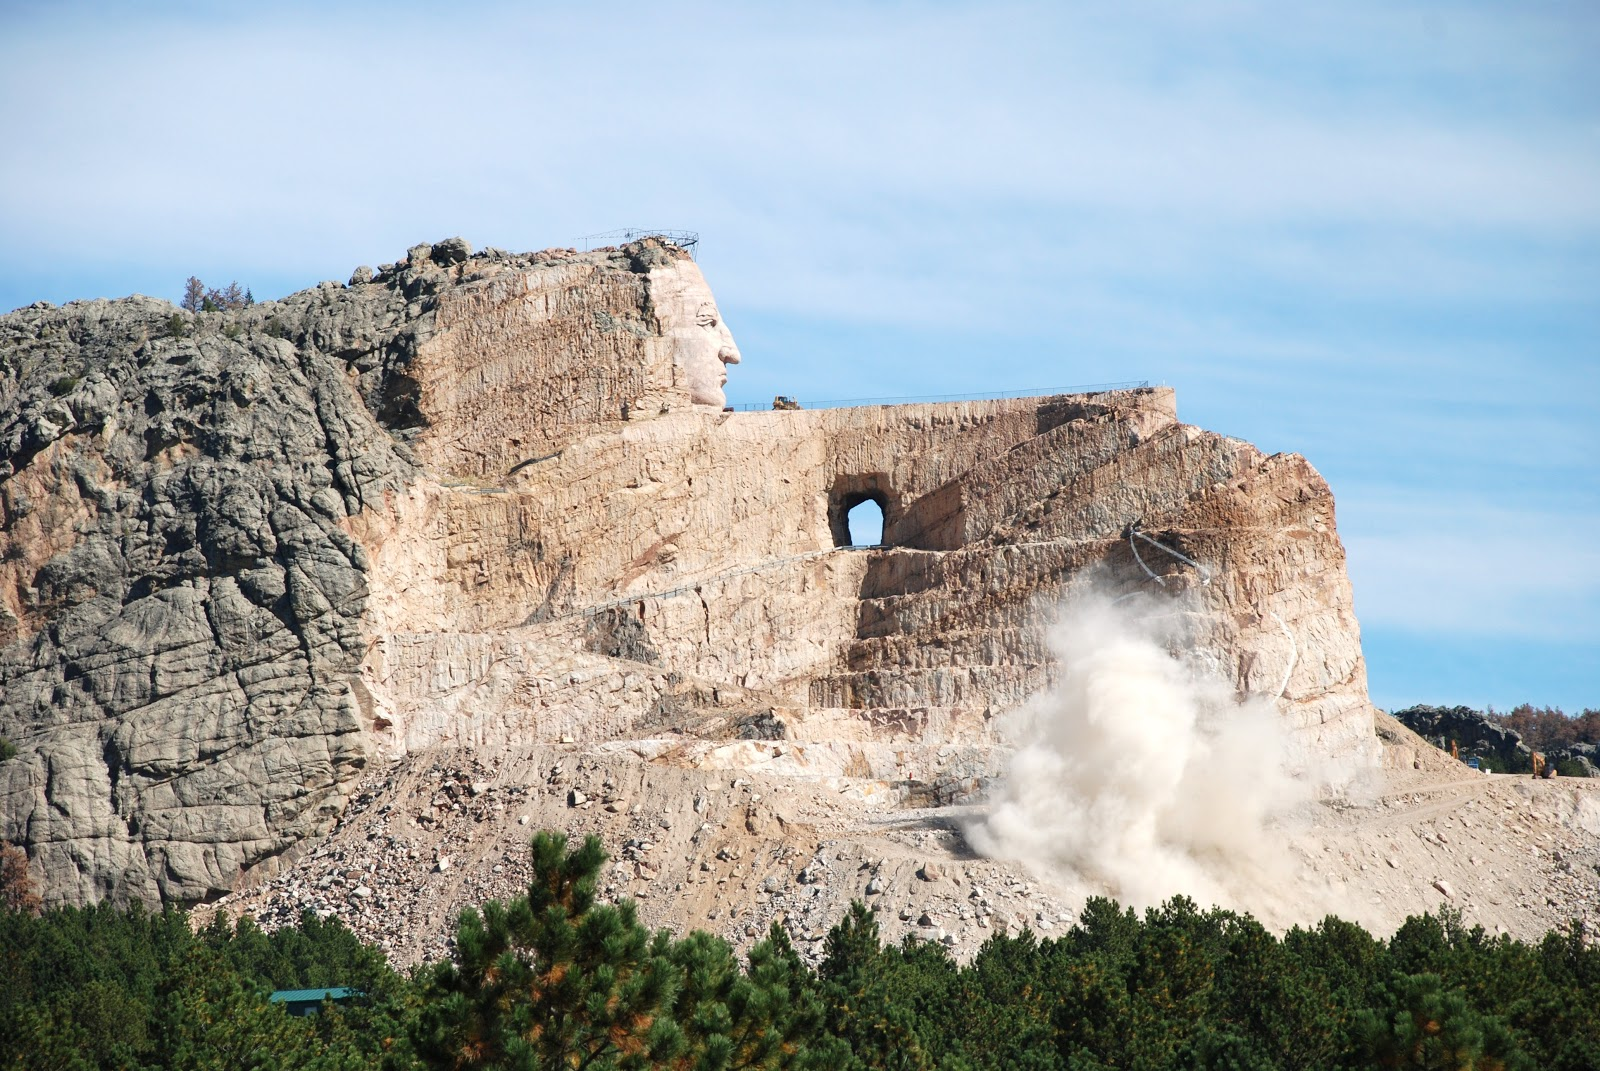 Pin Crazy Horse Monument Completion Sci Fi Wallpaper Album Sized on ...